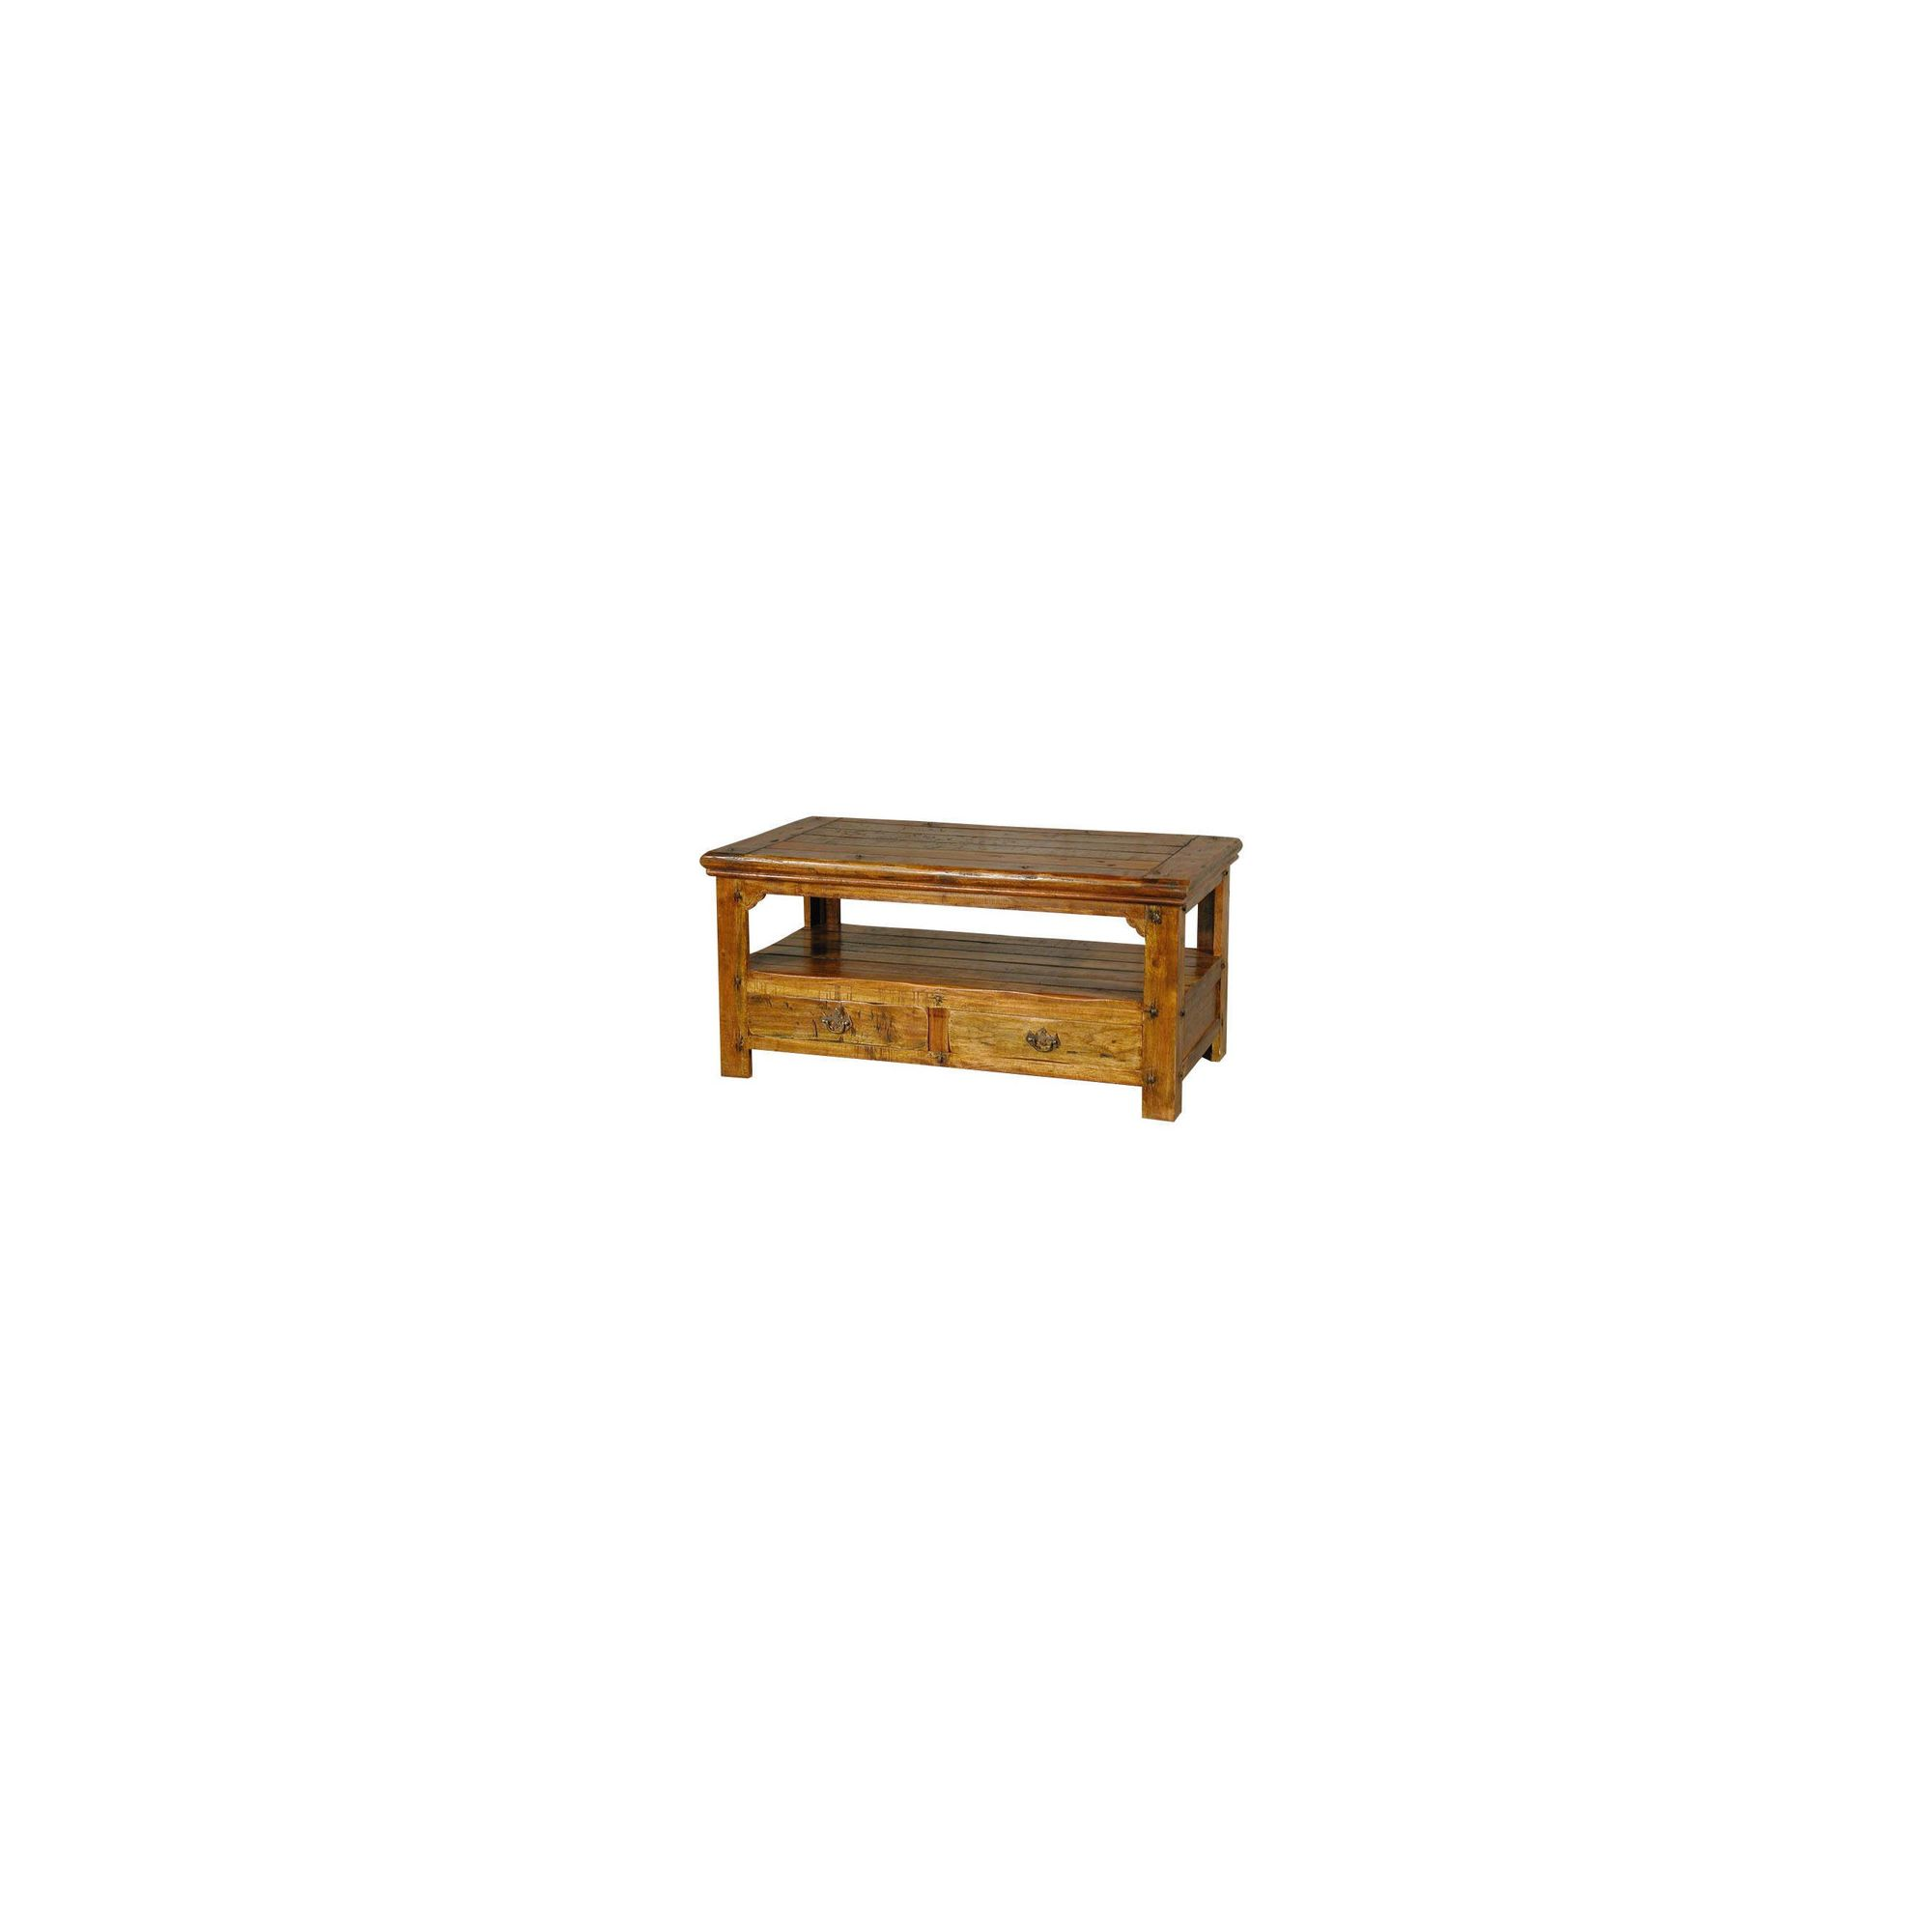 Alterton Furniture Granary 4 Drawer Coffee Table at Tesco Direct